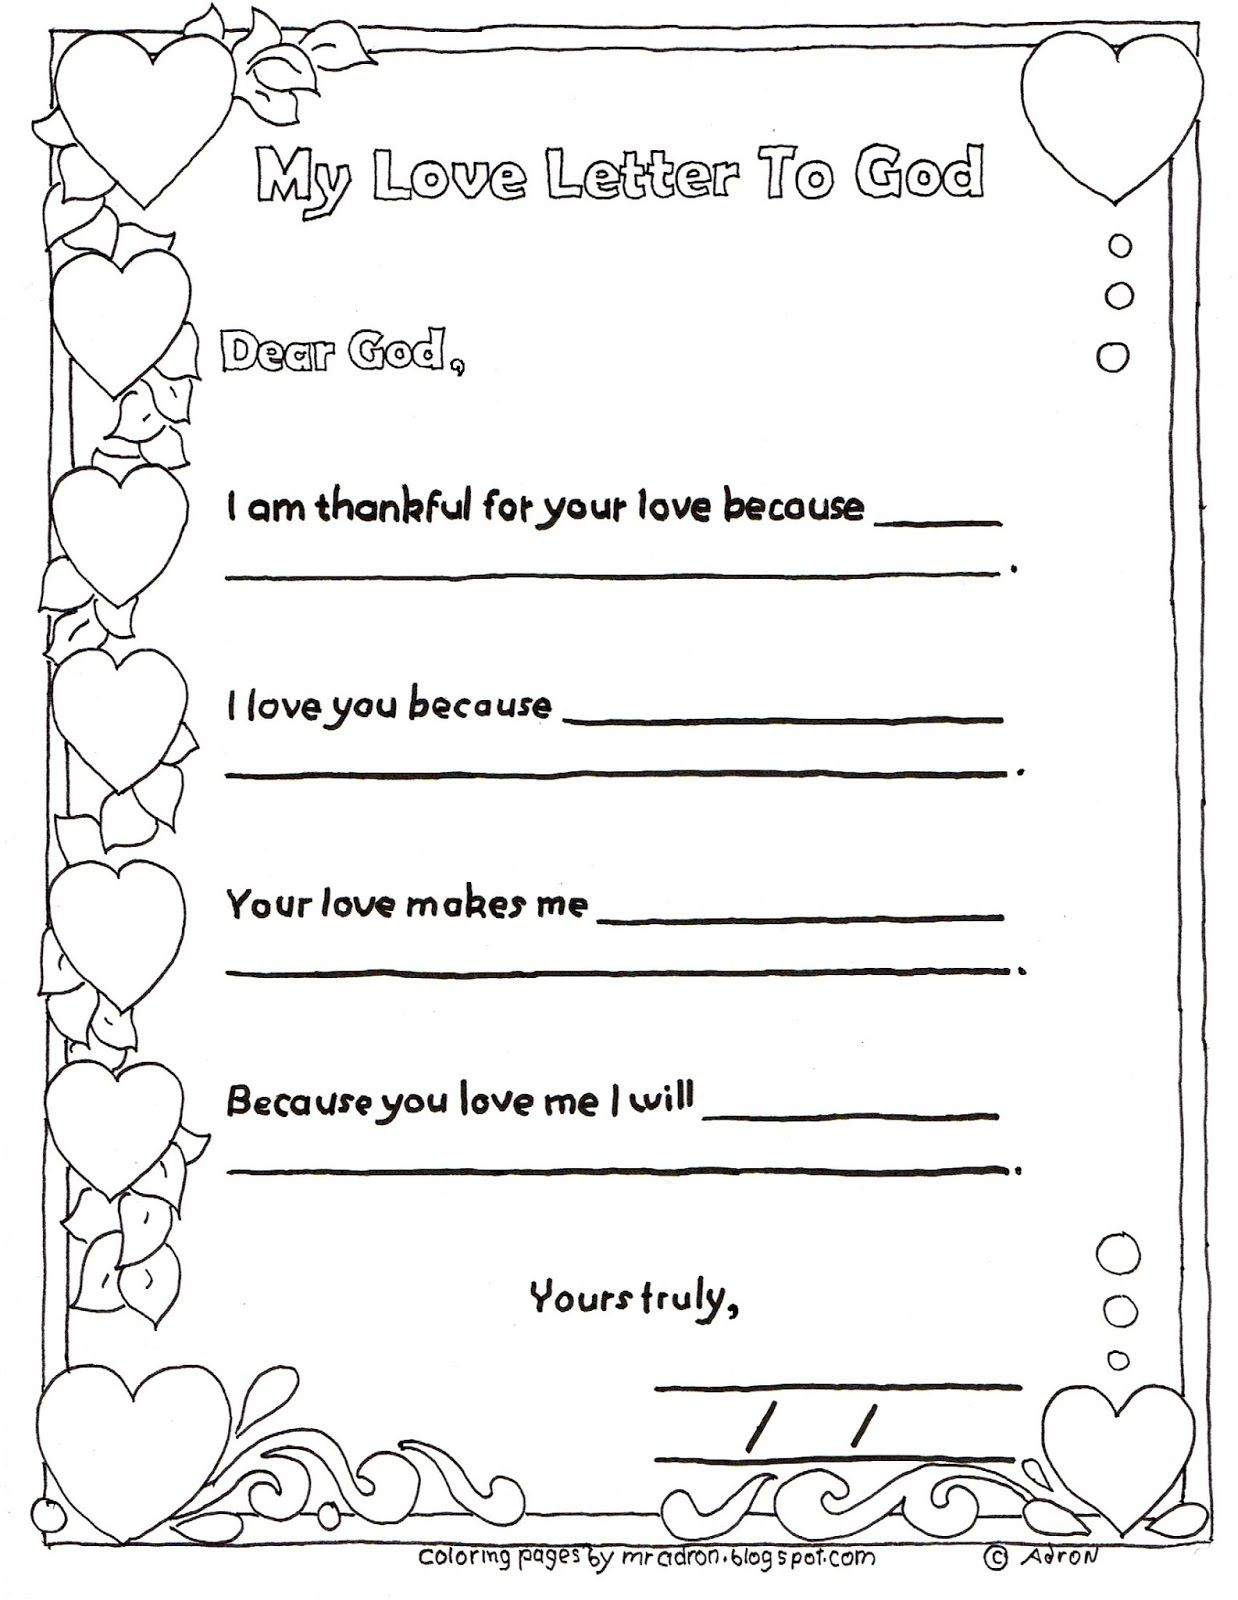 This Printable Coloring Page Is Perfect For A Church Lesson On Loving God I Created It St Valentines Day Themed In My Churc